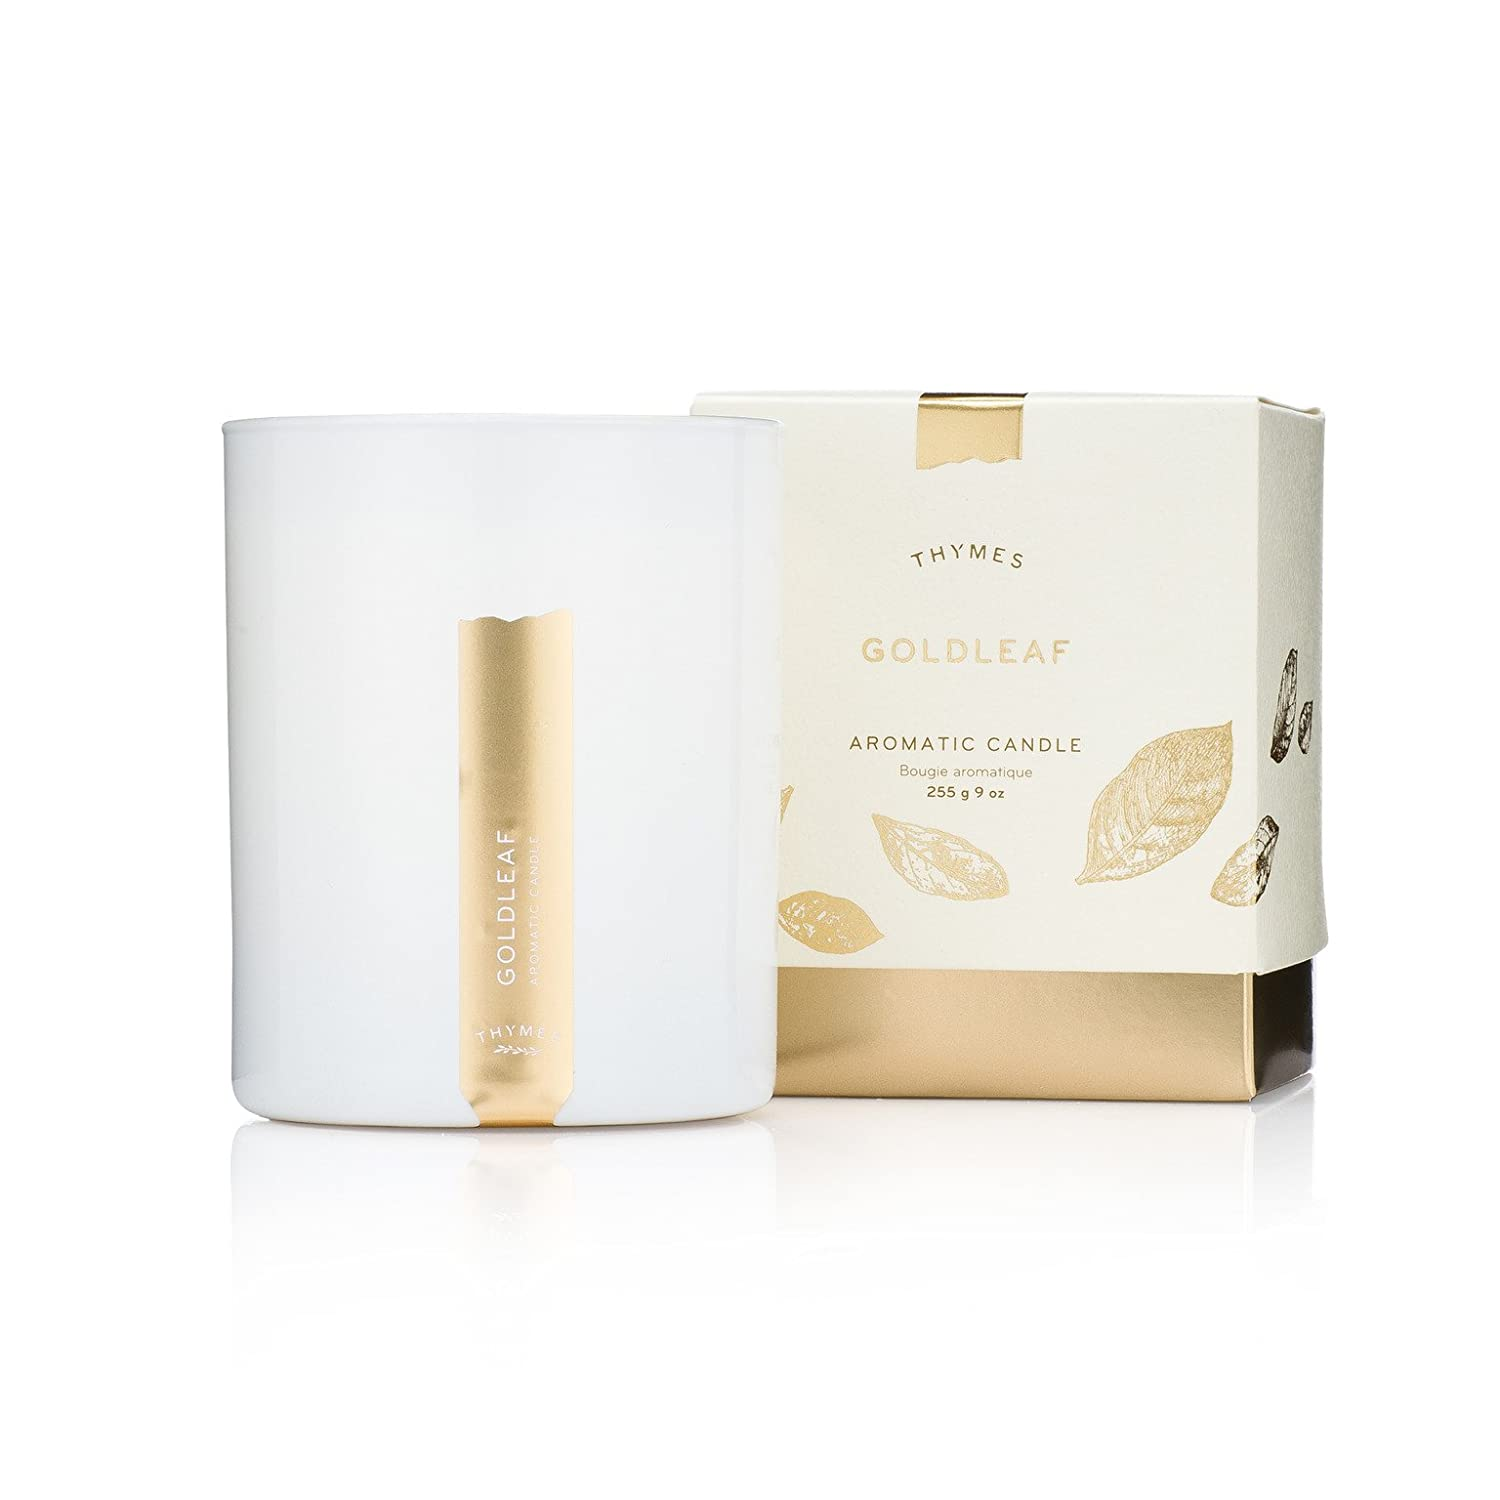 Thymes - Goldleaf Aromatic Scented Candle - Long Lasting Elegant Floral Scent with Gift Box - 9 oz